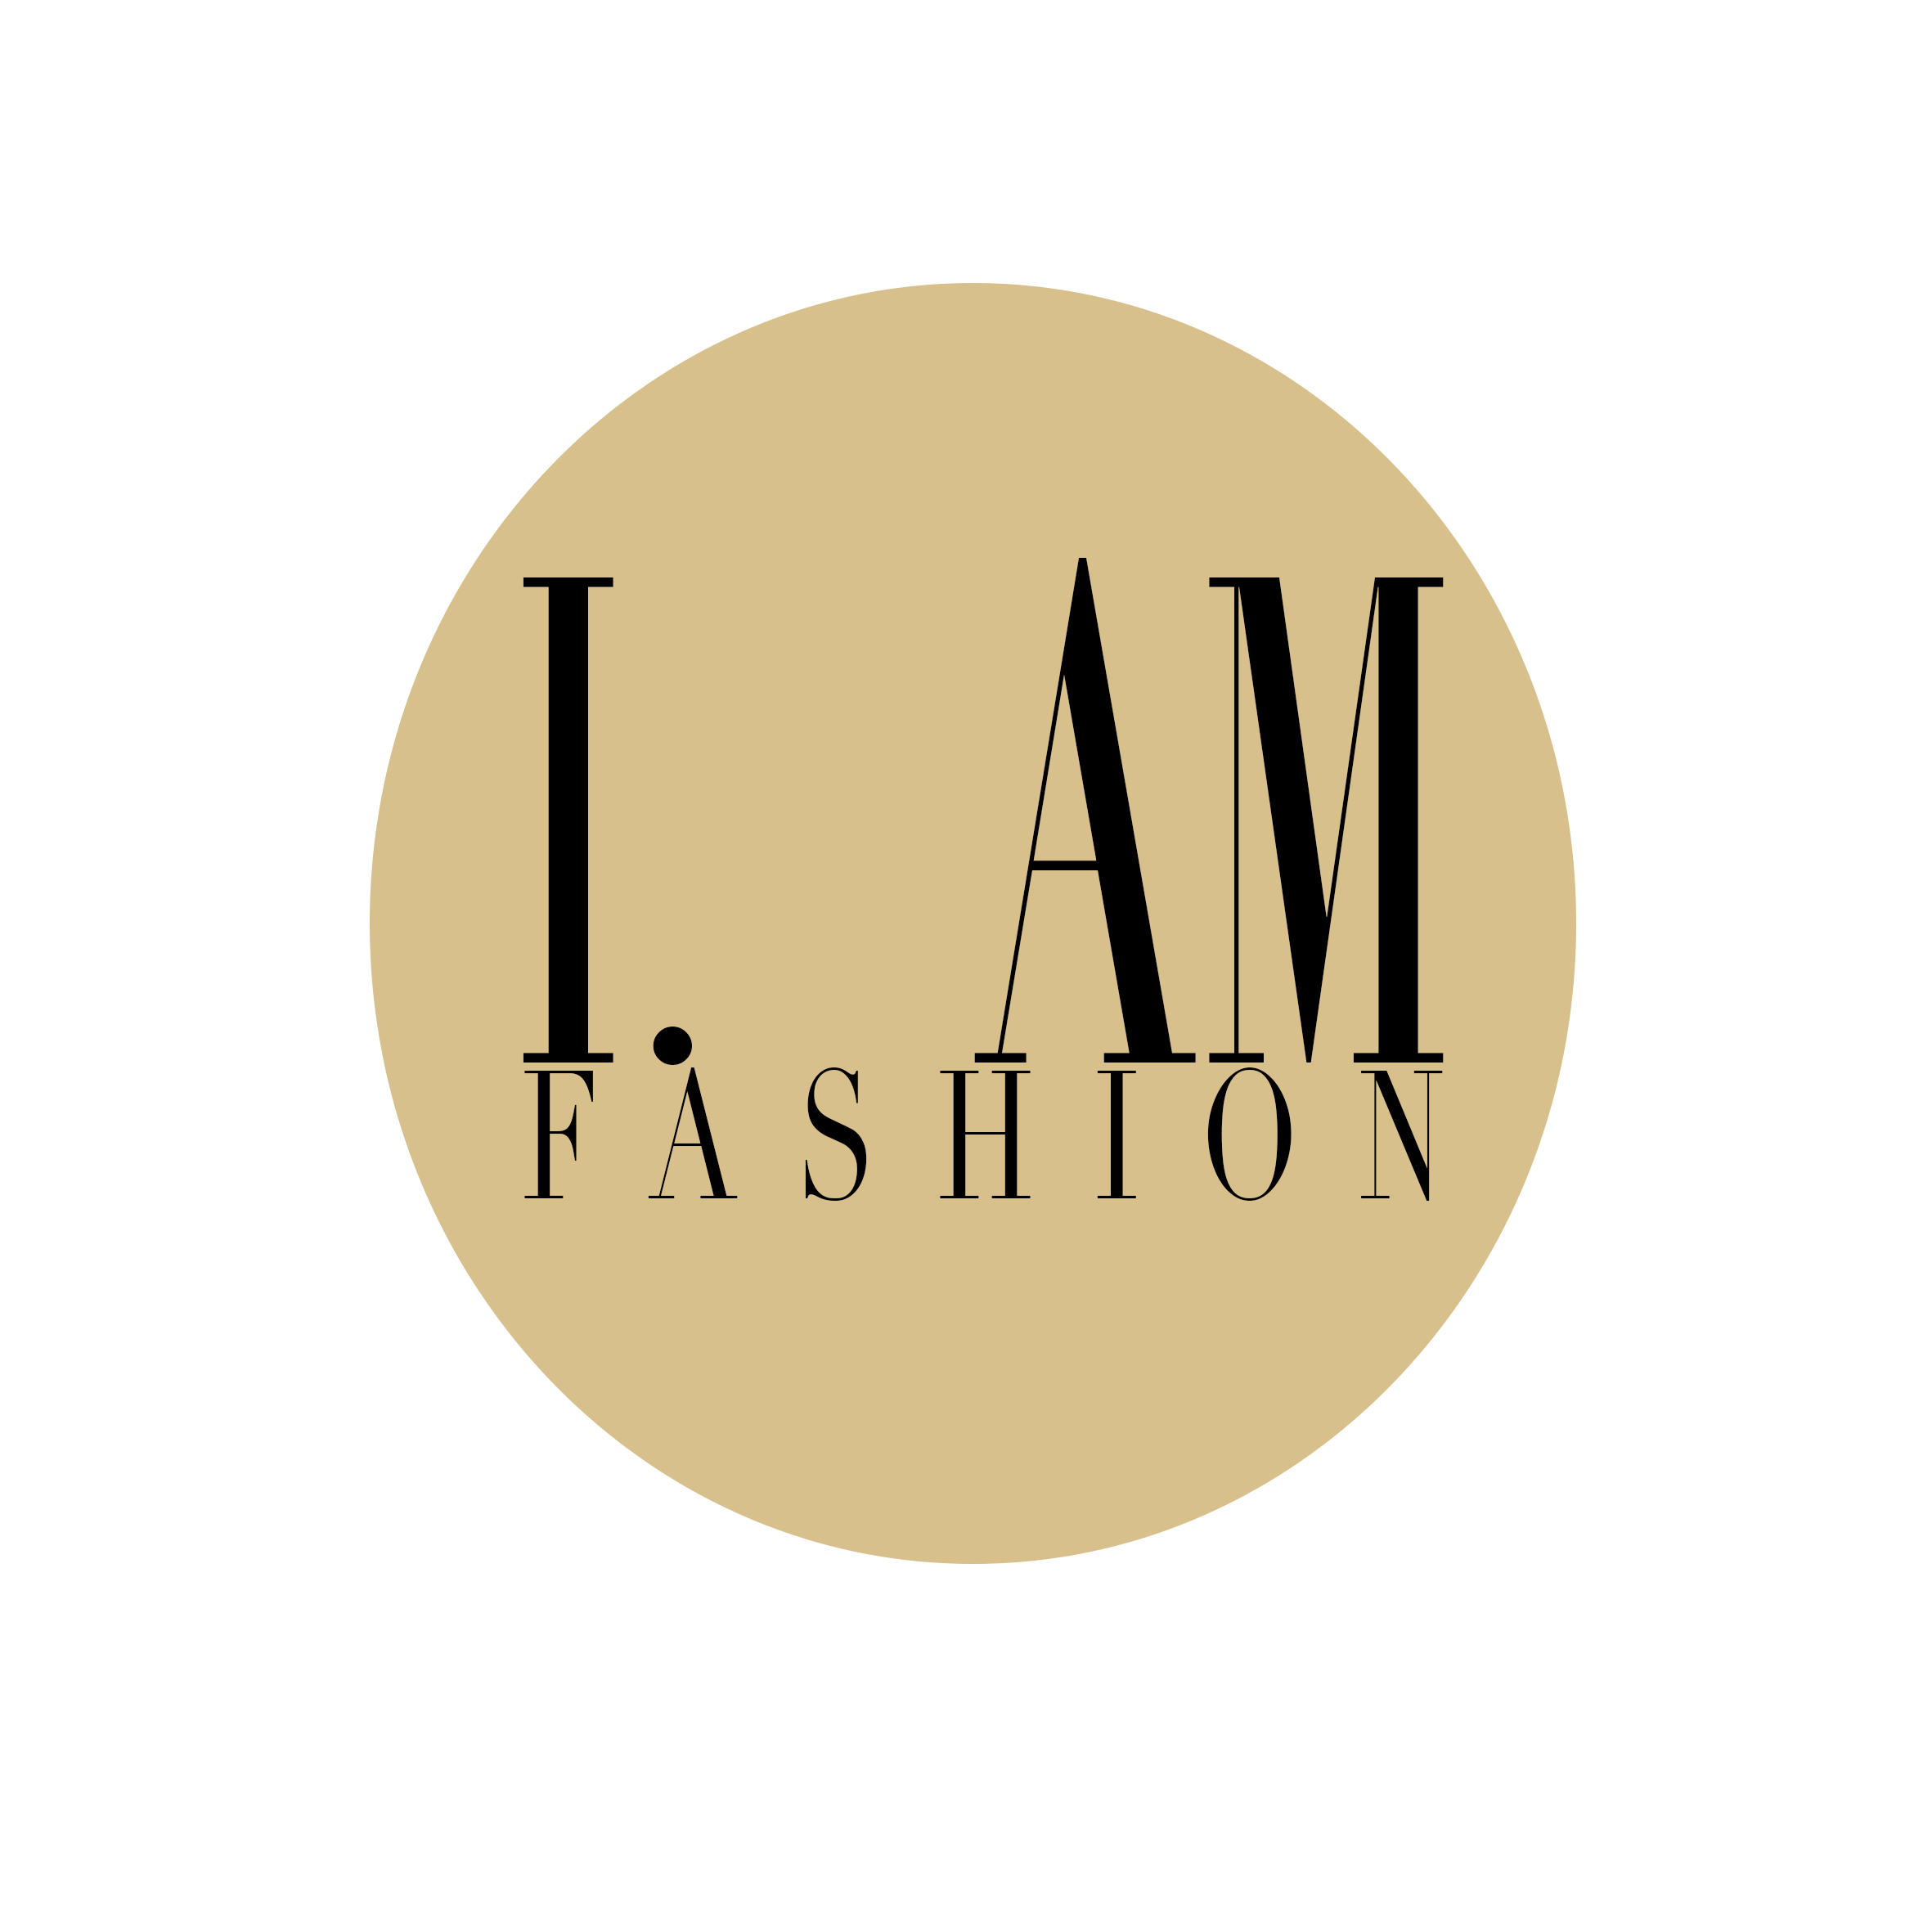 iamfashion